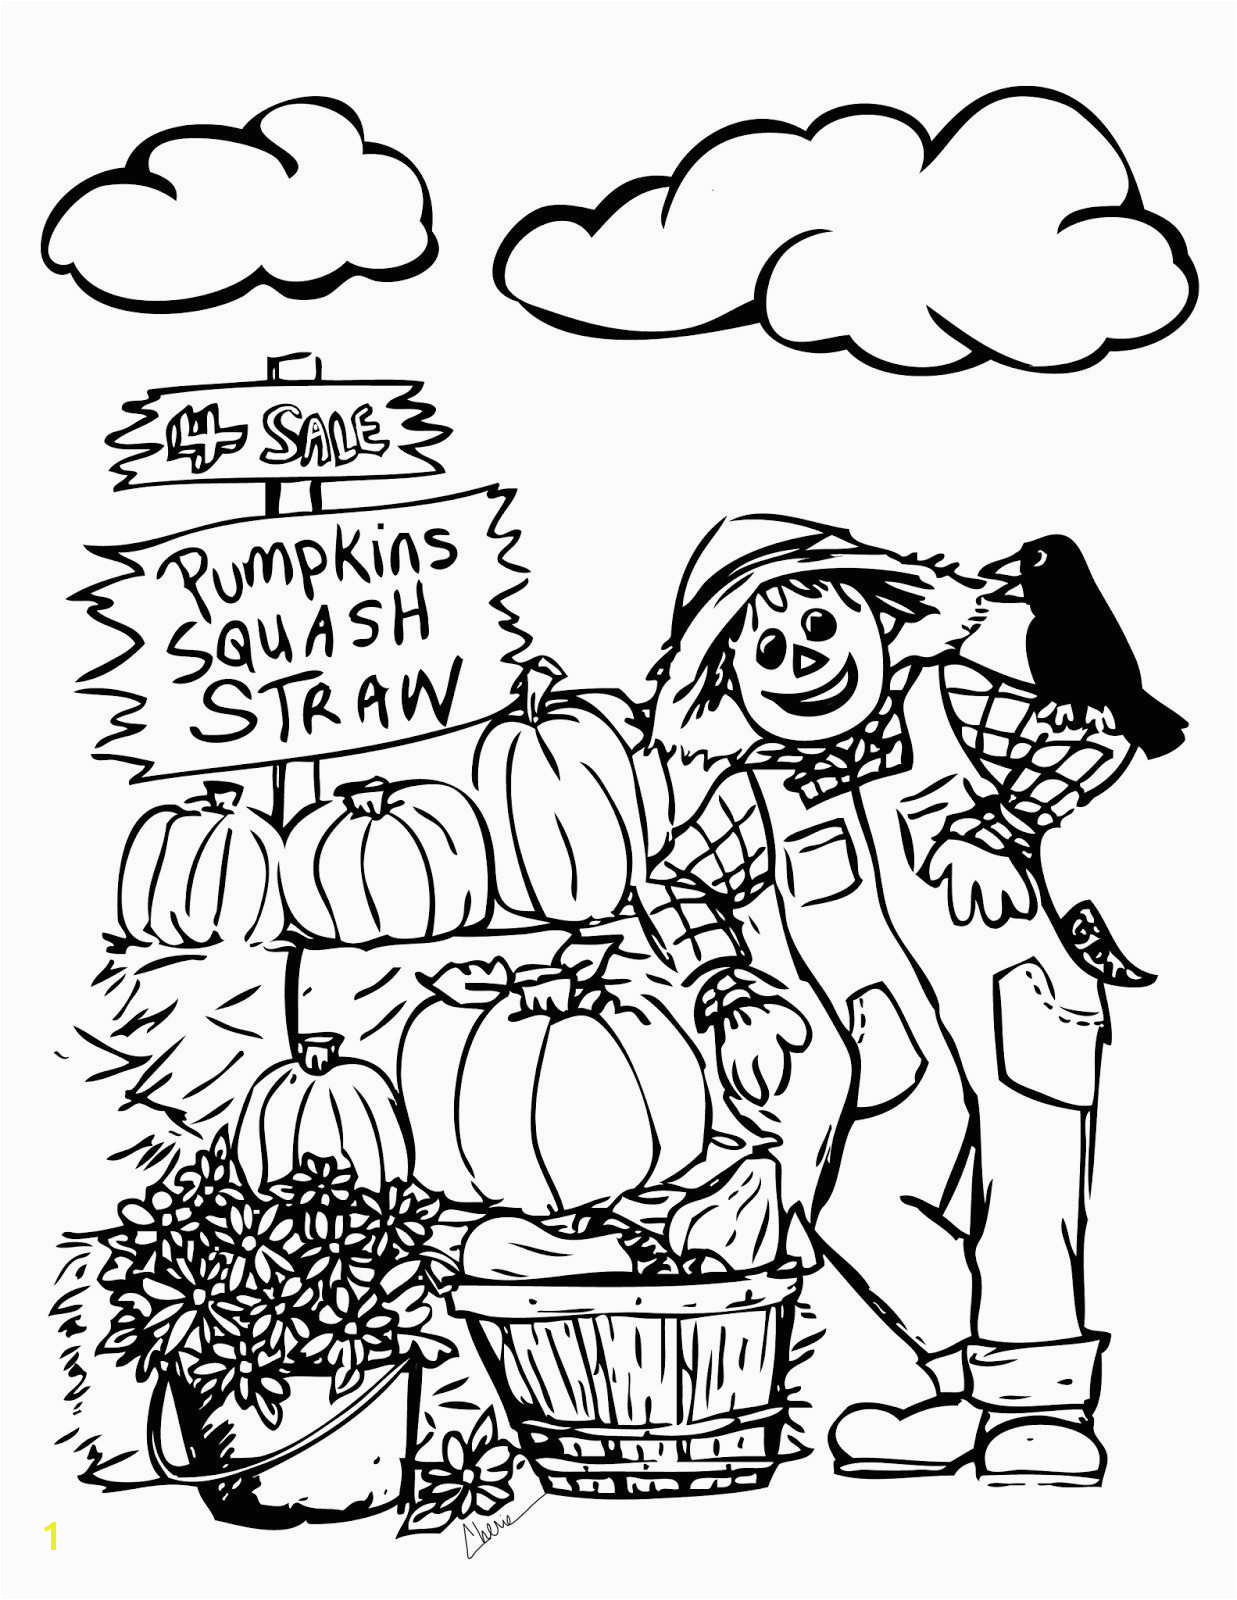 Free Printable Leaf Coloring Pages New Fall Coloring Pages for Adults Luxury Free Fall Coloring Pages